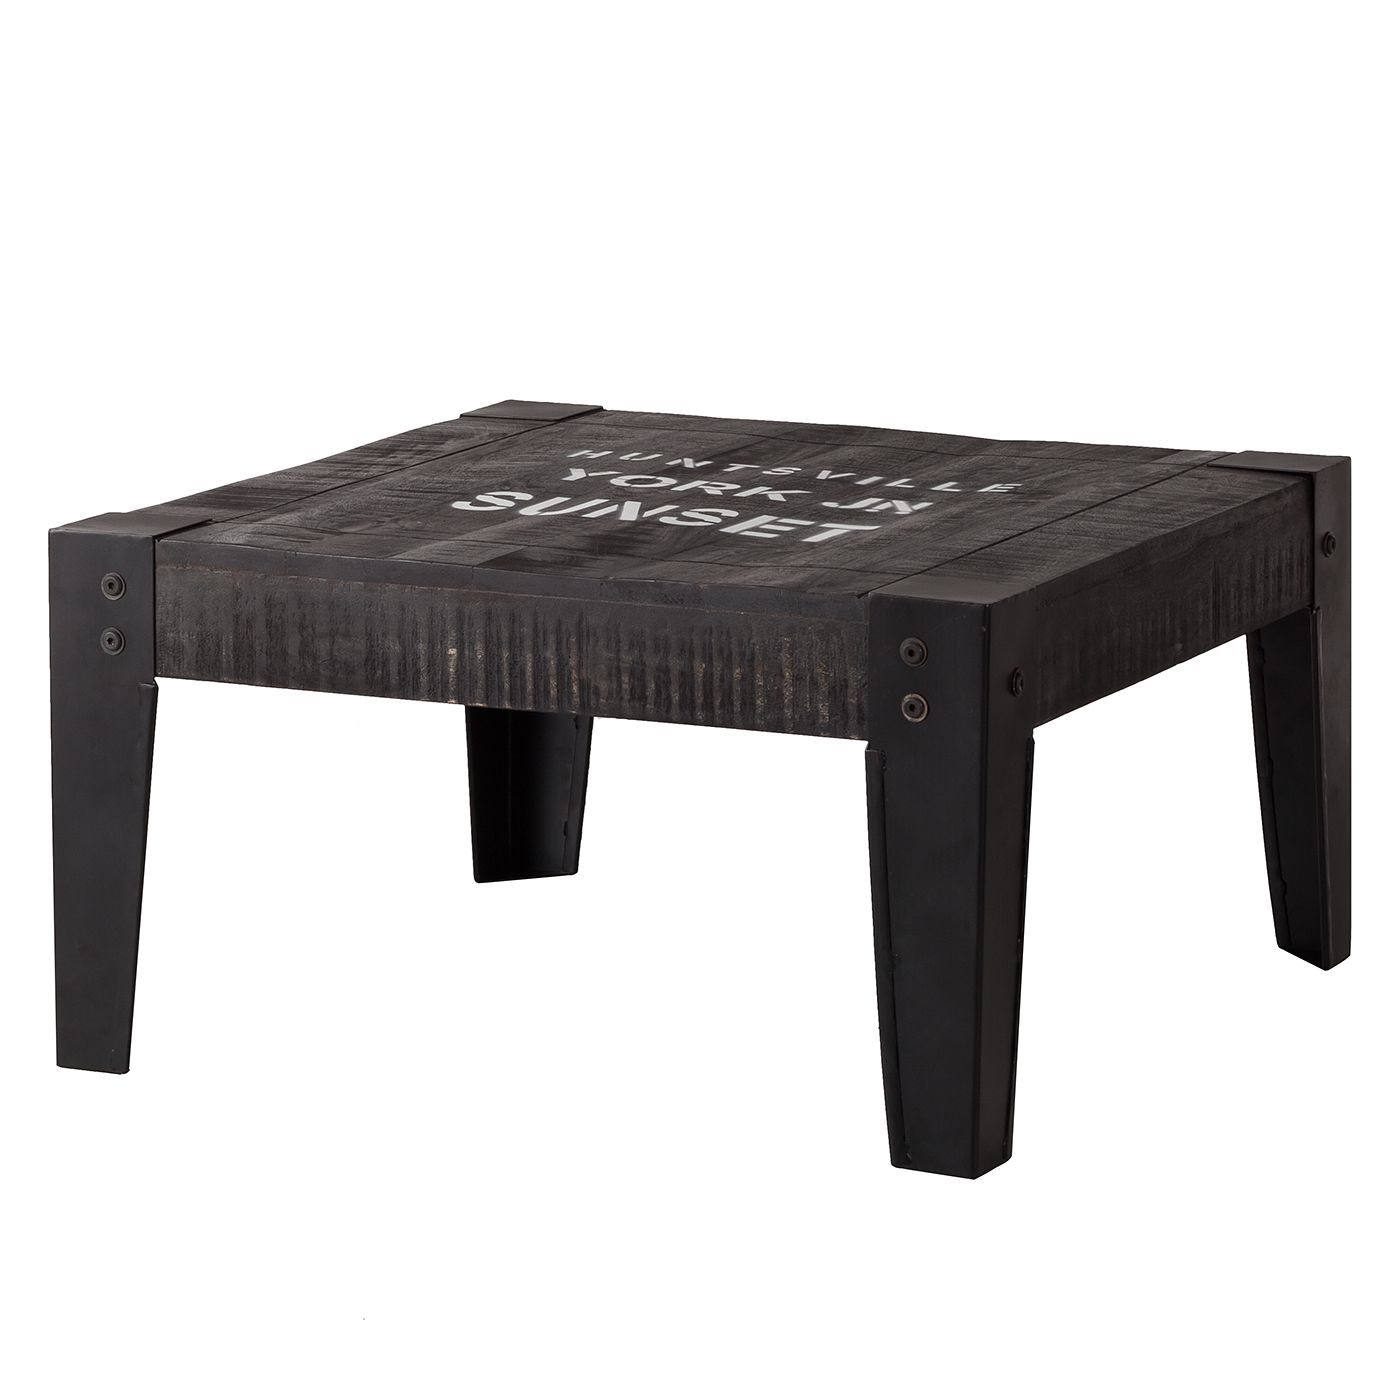 Table basse Keyport - Manguier massif - Gris cendres / Noir - 75 x 75 cm, ars manufacti